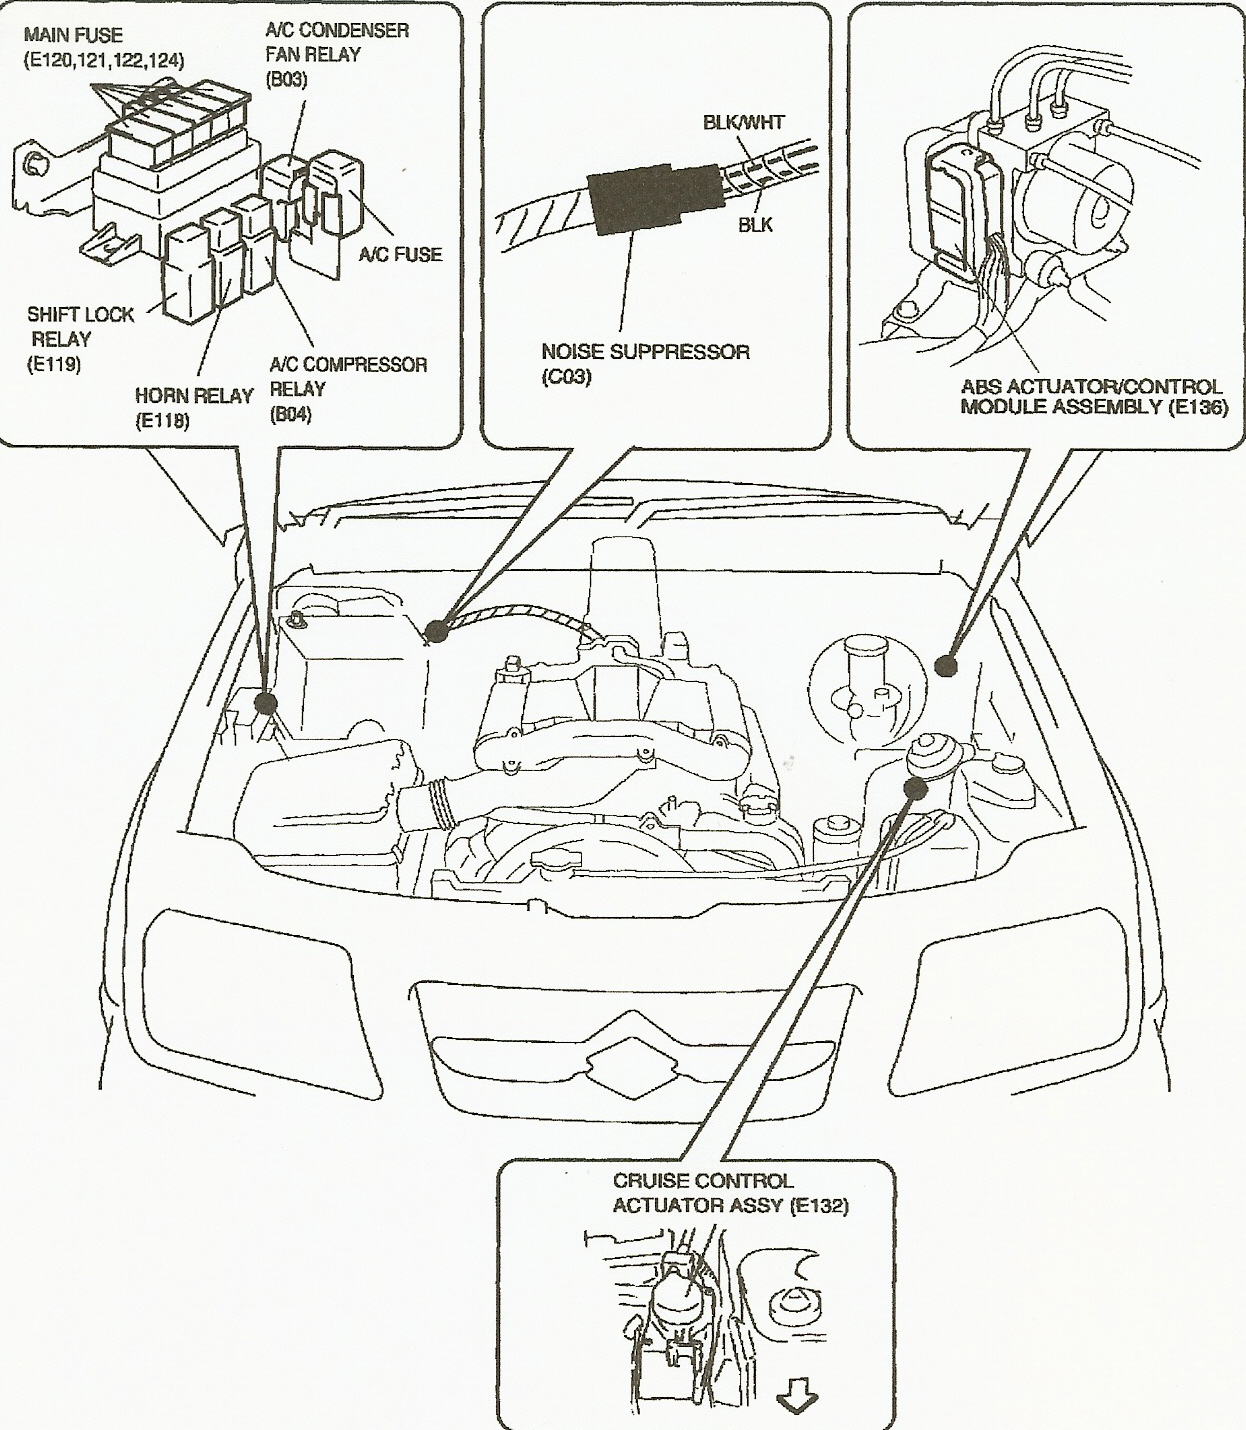 2001 suzuki grand vitara fuse box location image details 2002 suzuki vitara fuse box diagram 99 grand vitara fuse box